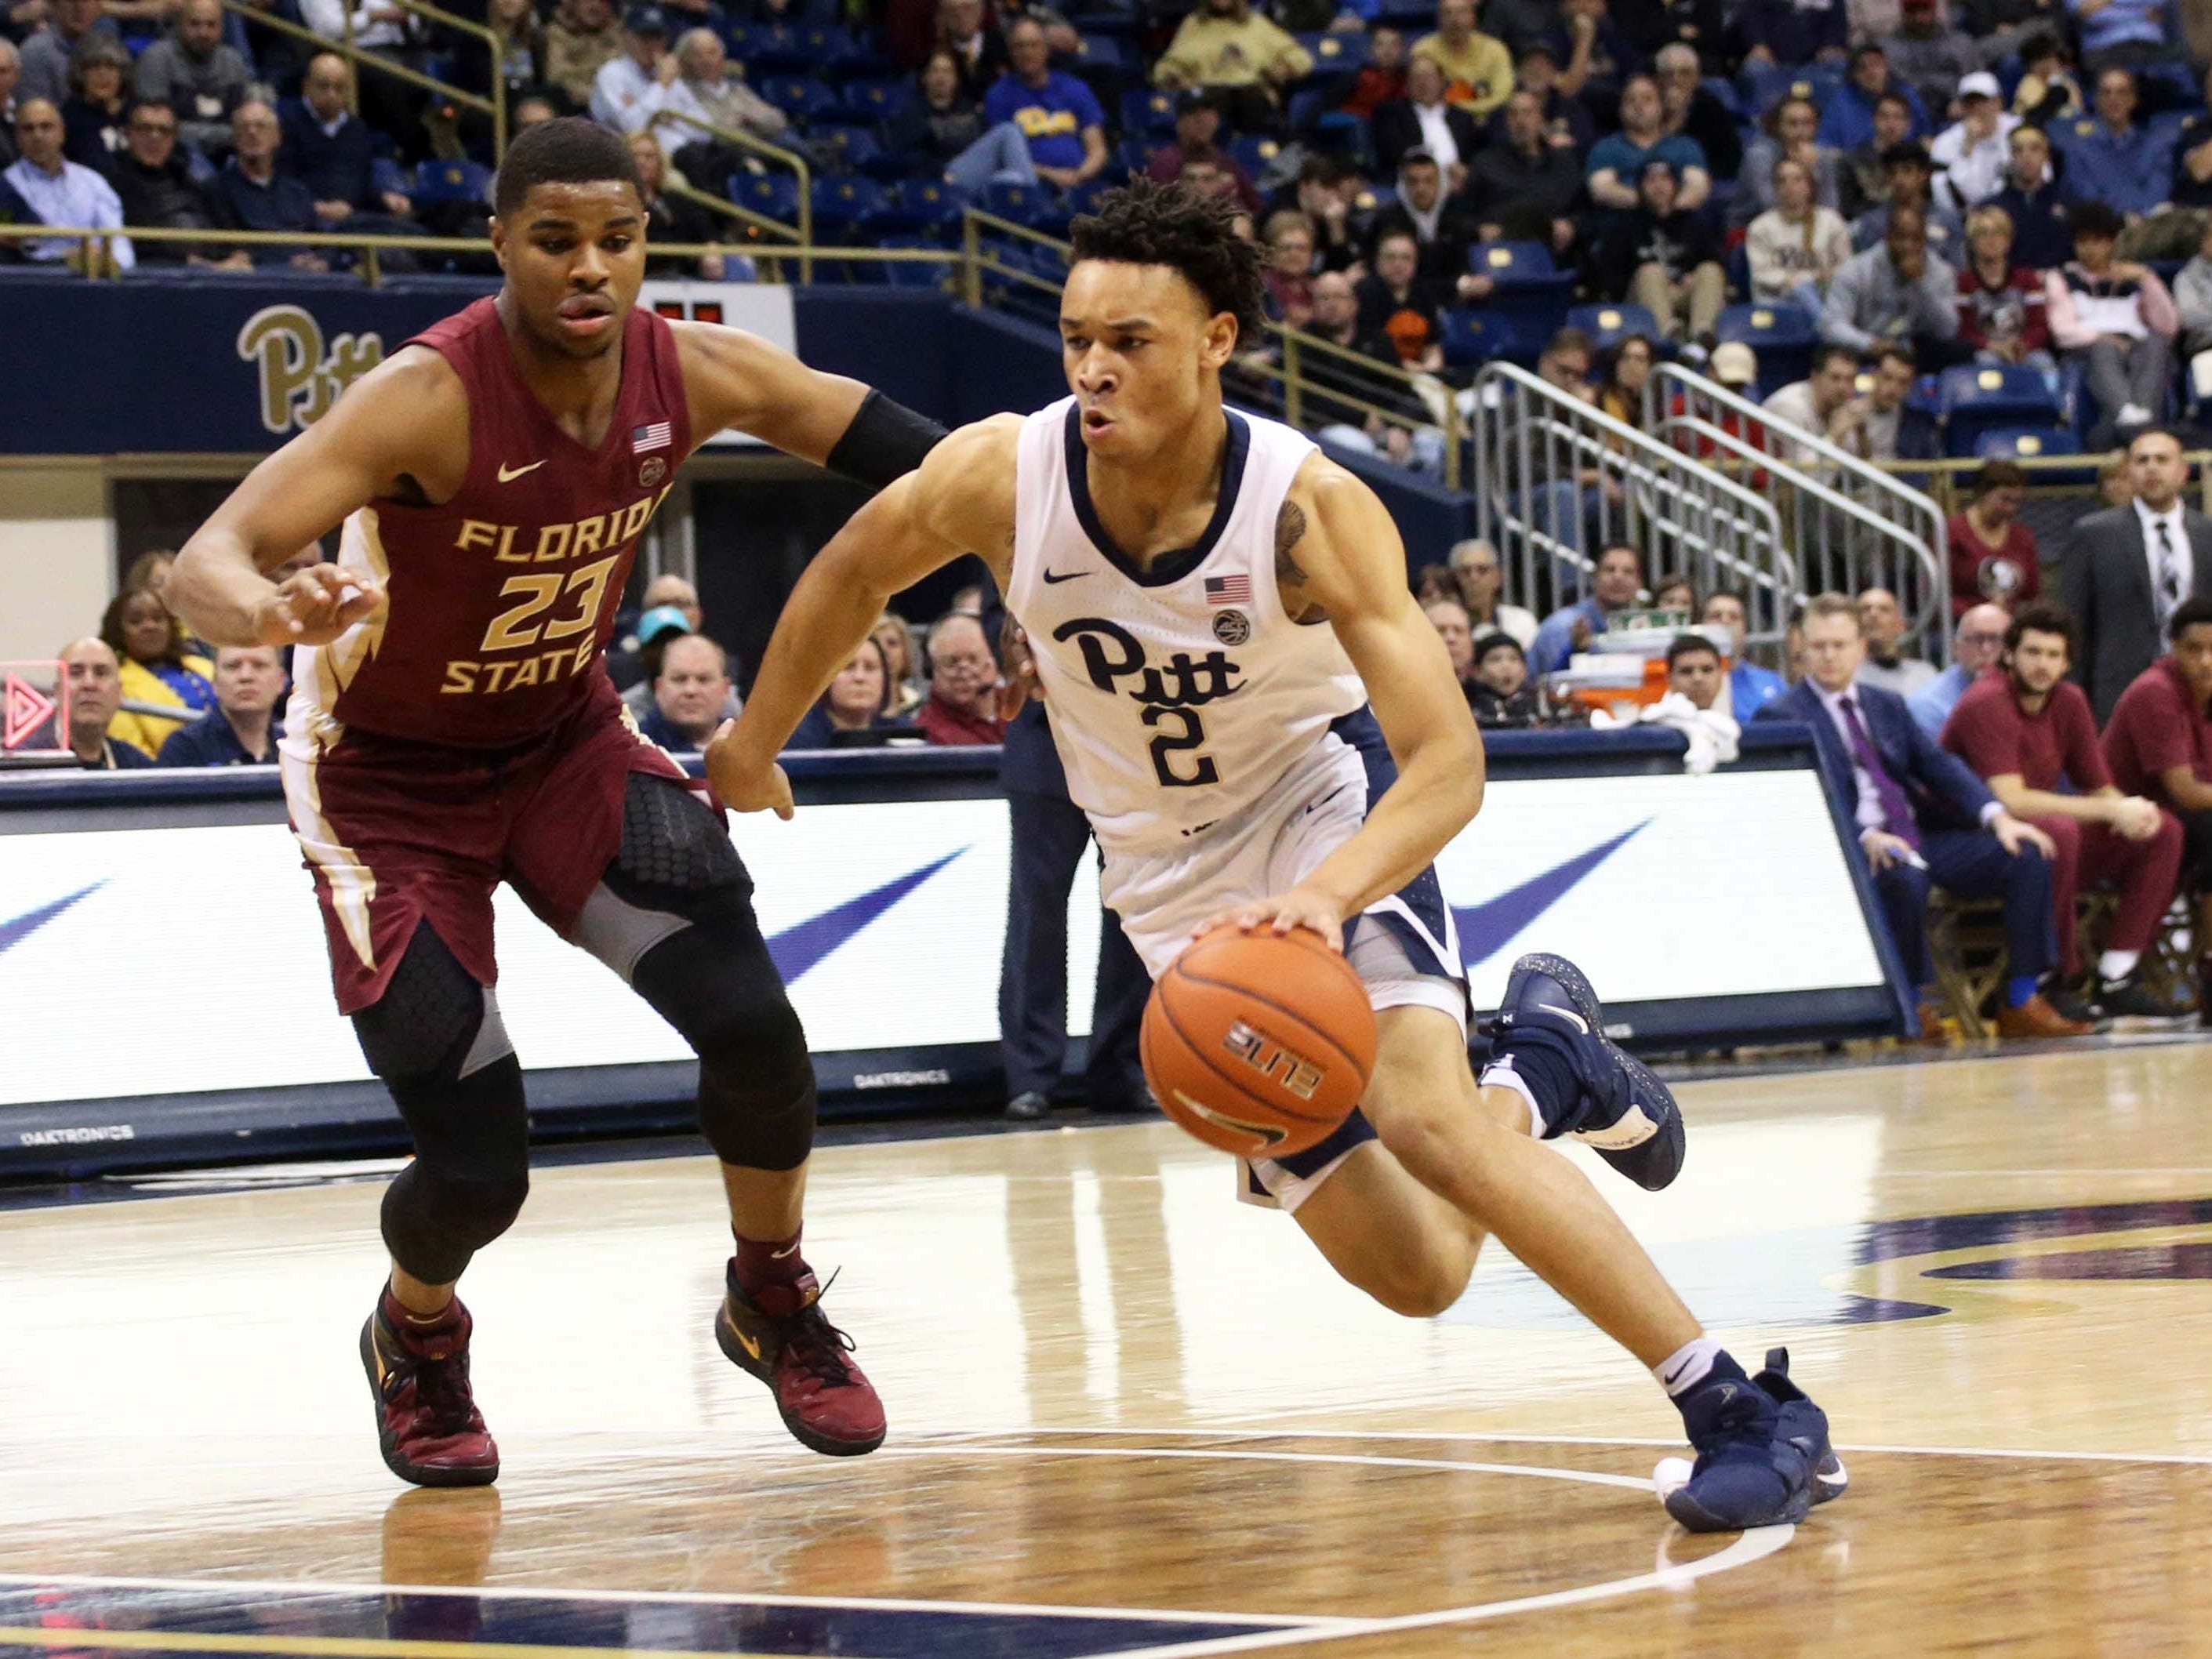 Florida State and guard M.J. Walker (23) suffered yet another defeat during a 75-62 loss to Pittsburgh at the Petersen Events Center on Monday night.